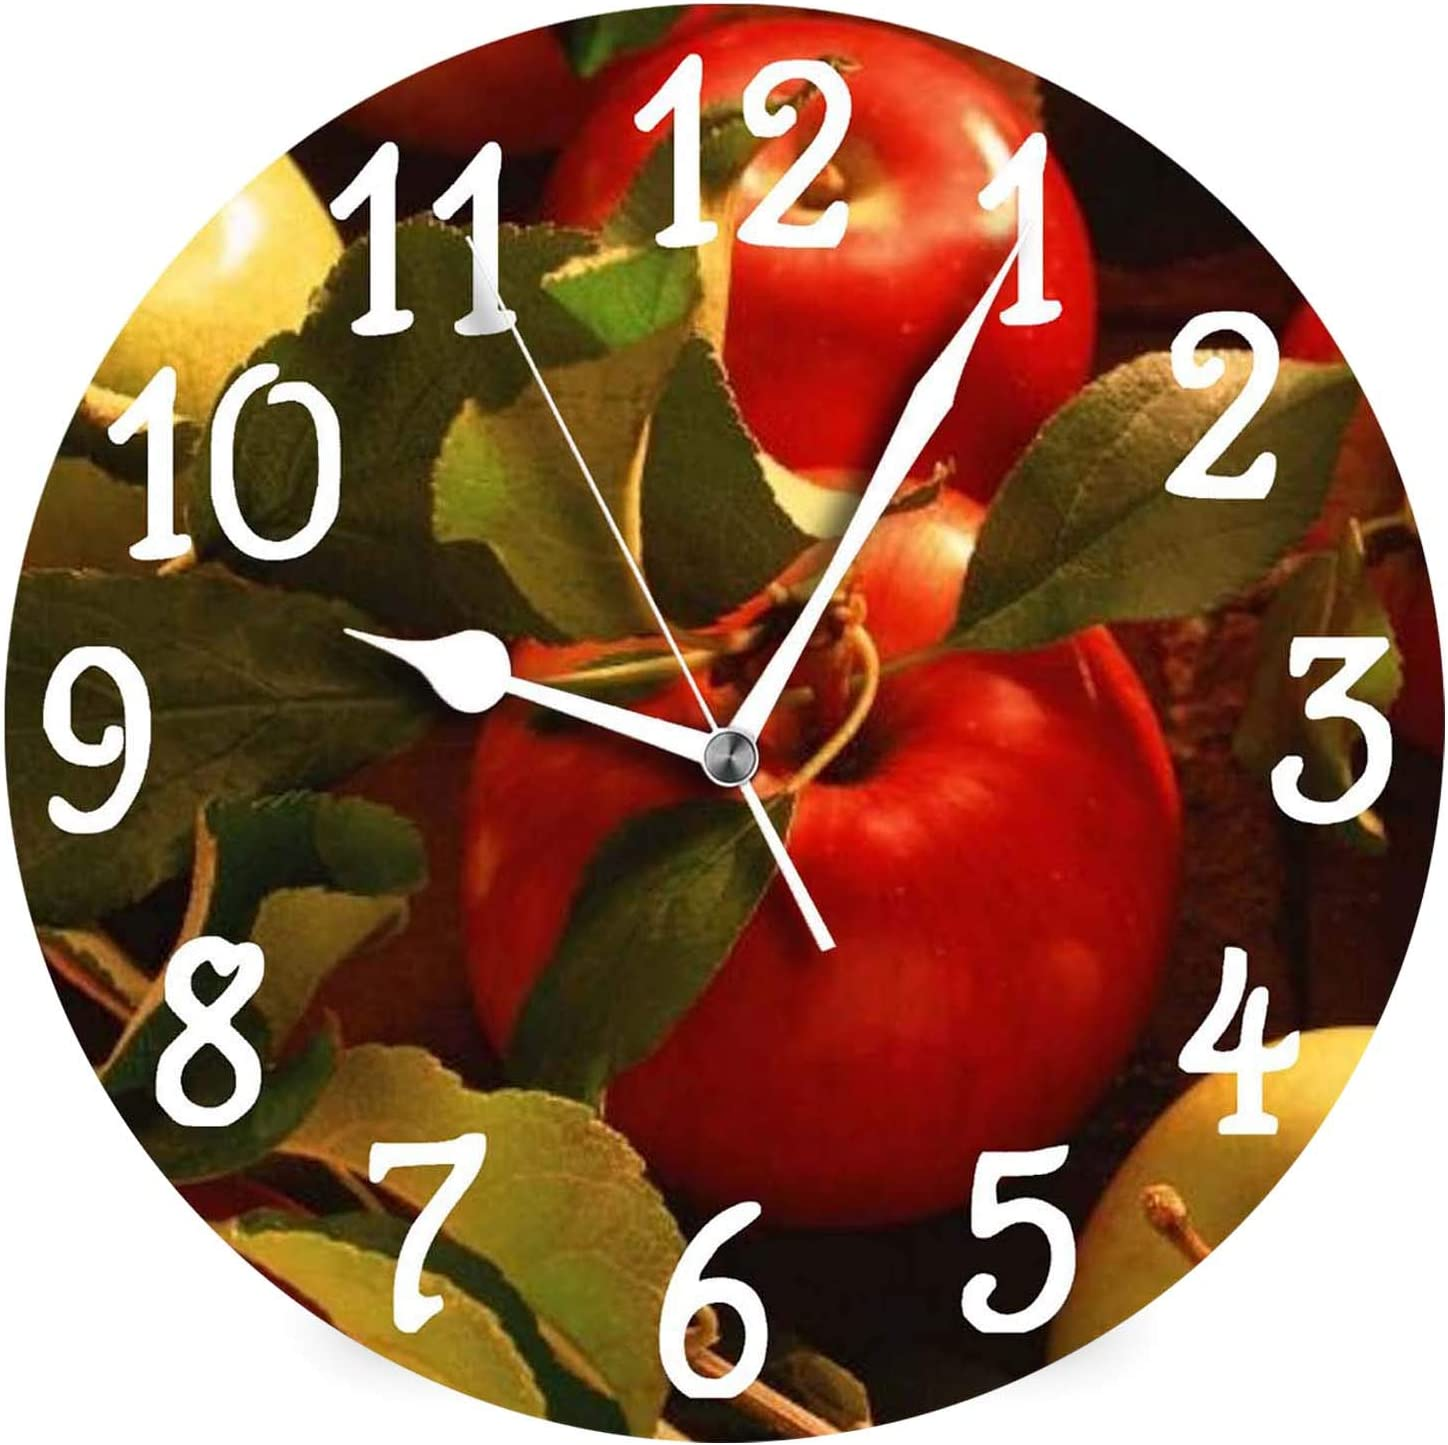 Fall Autumn Apples Design Kitchen Round Wall Clock,Battery Operated,Large Kitchen Clock,12 Inch Analog Quiet Desk Clock for Home,Office,School